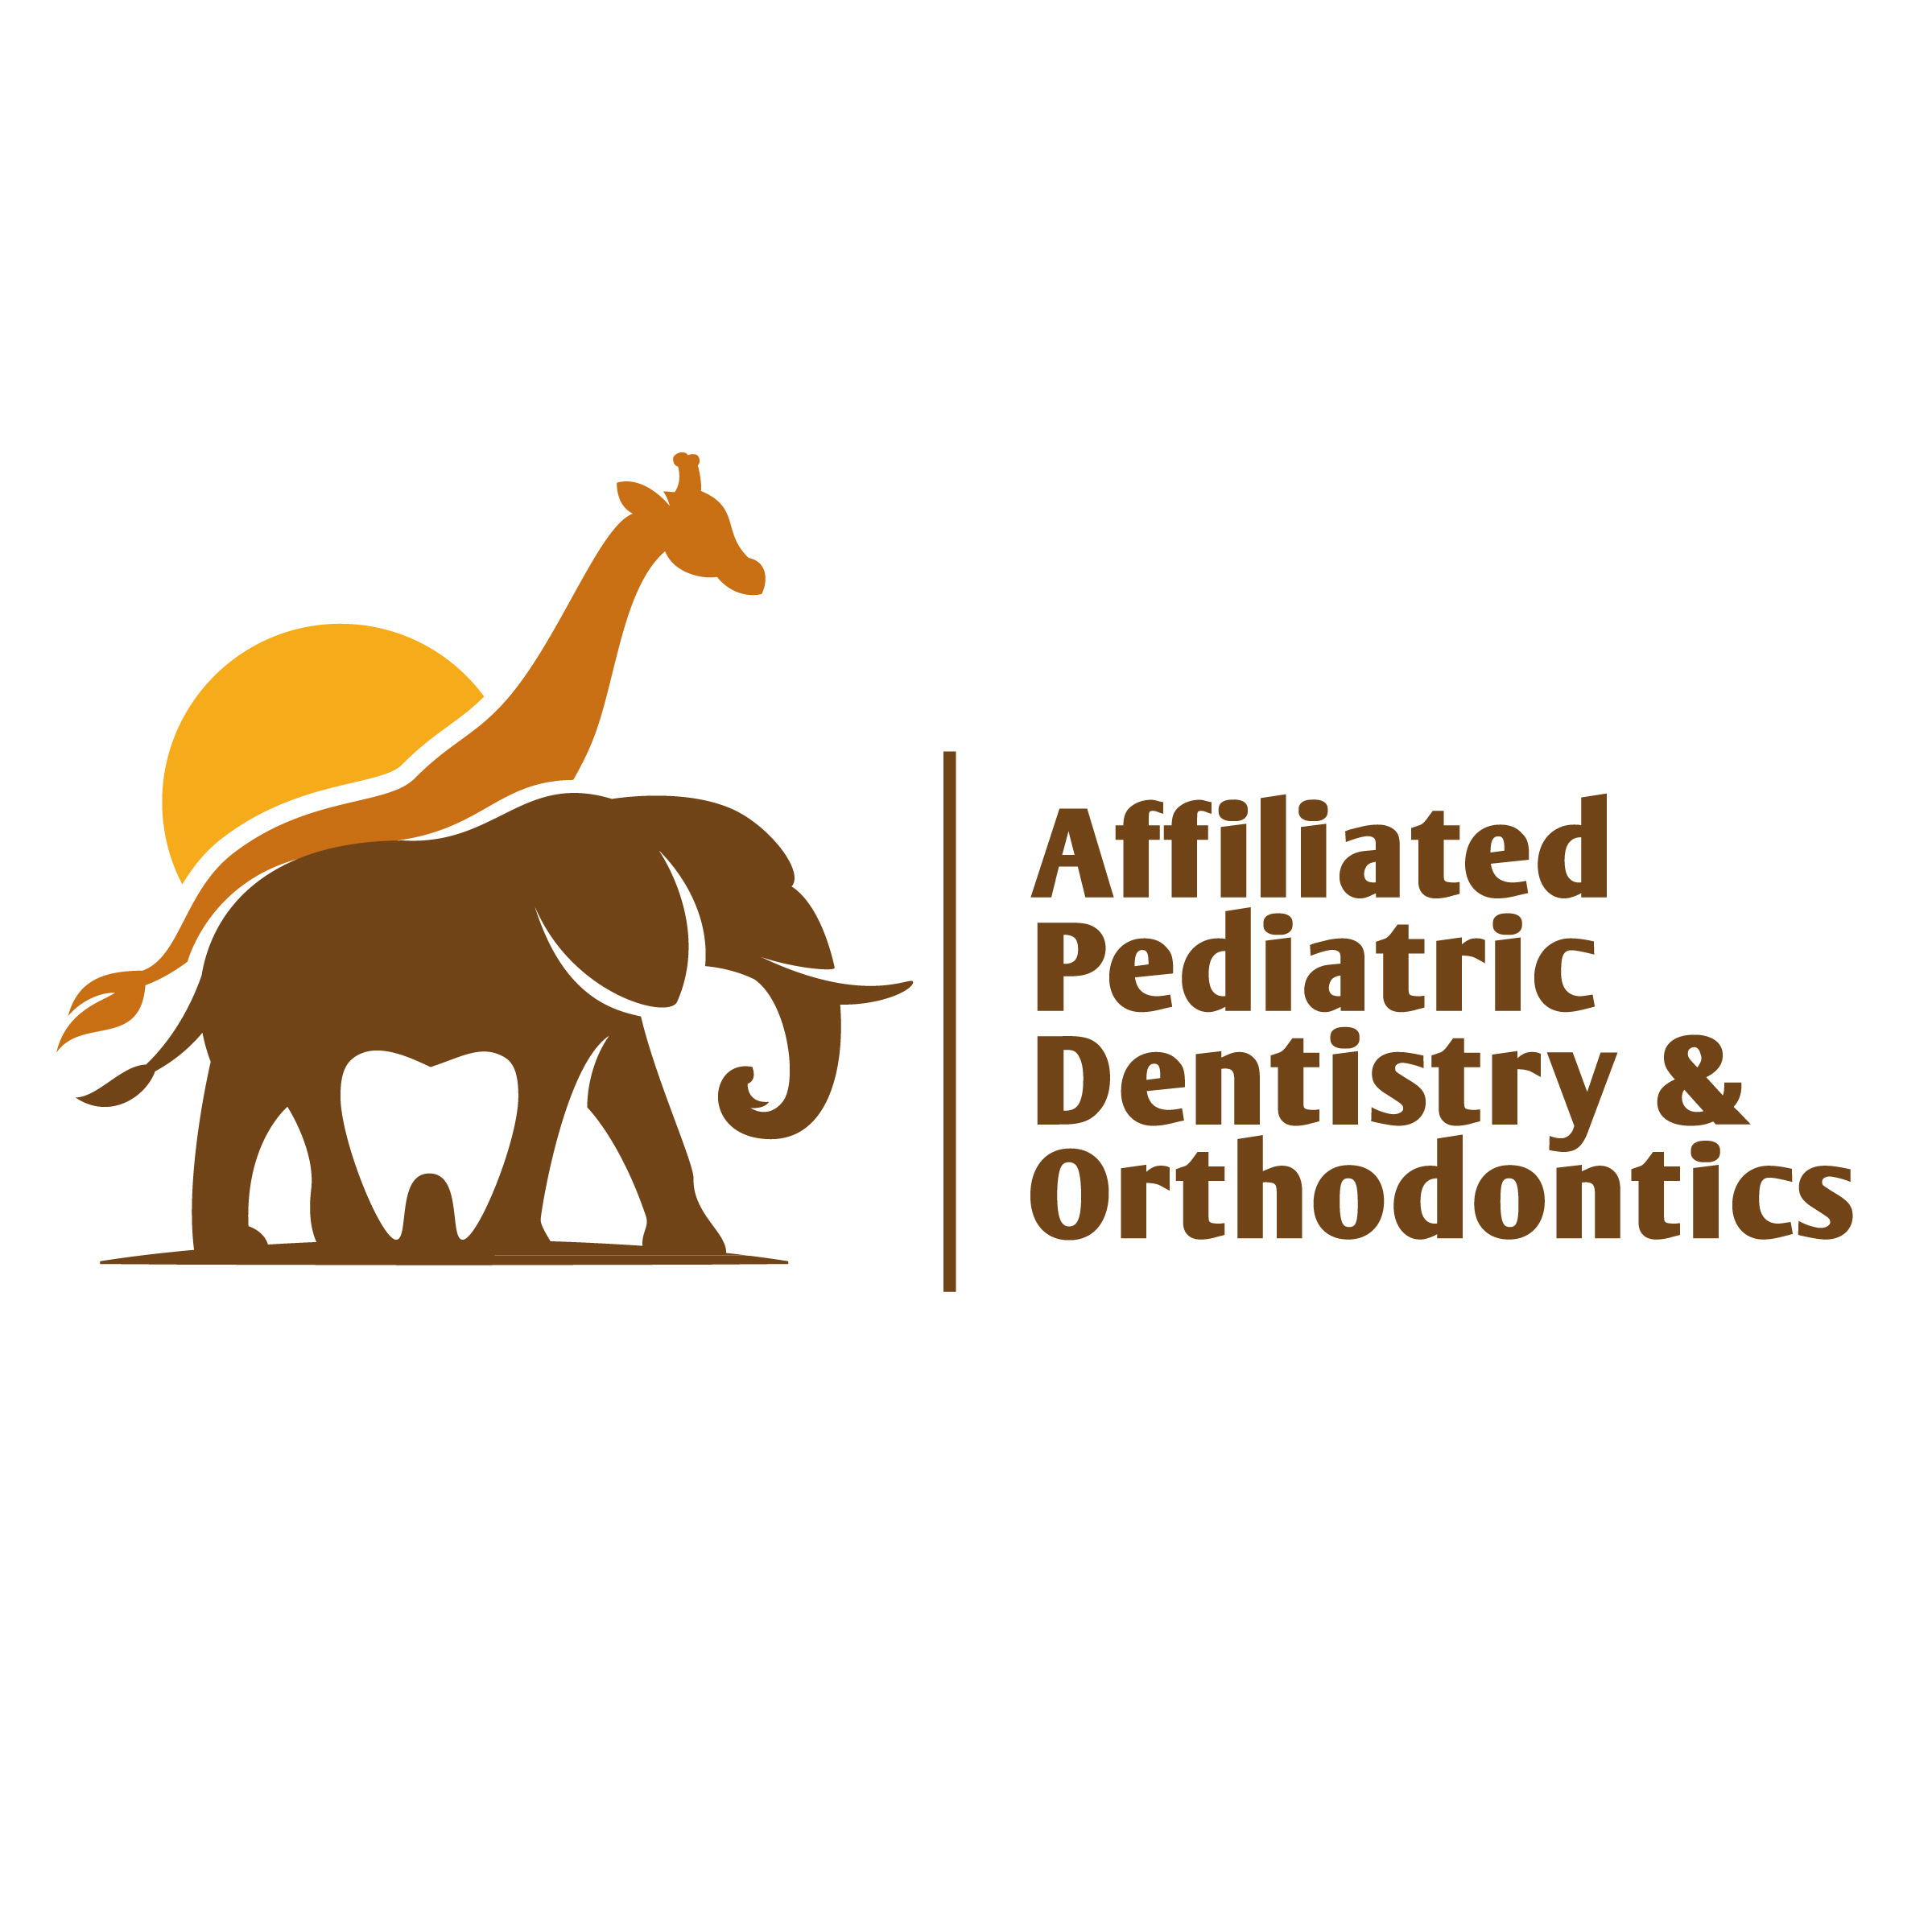 Affiliated Pediatric Dentistry & Orthodontics: Grayhawk image 15